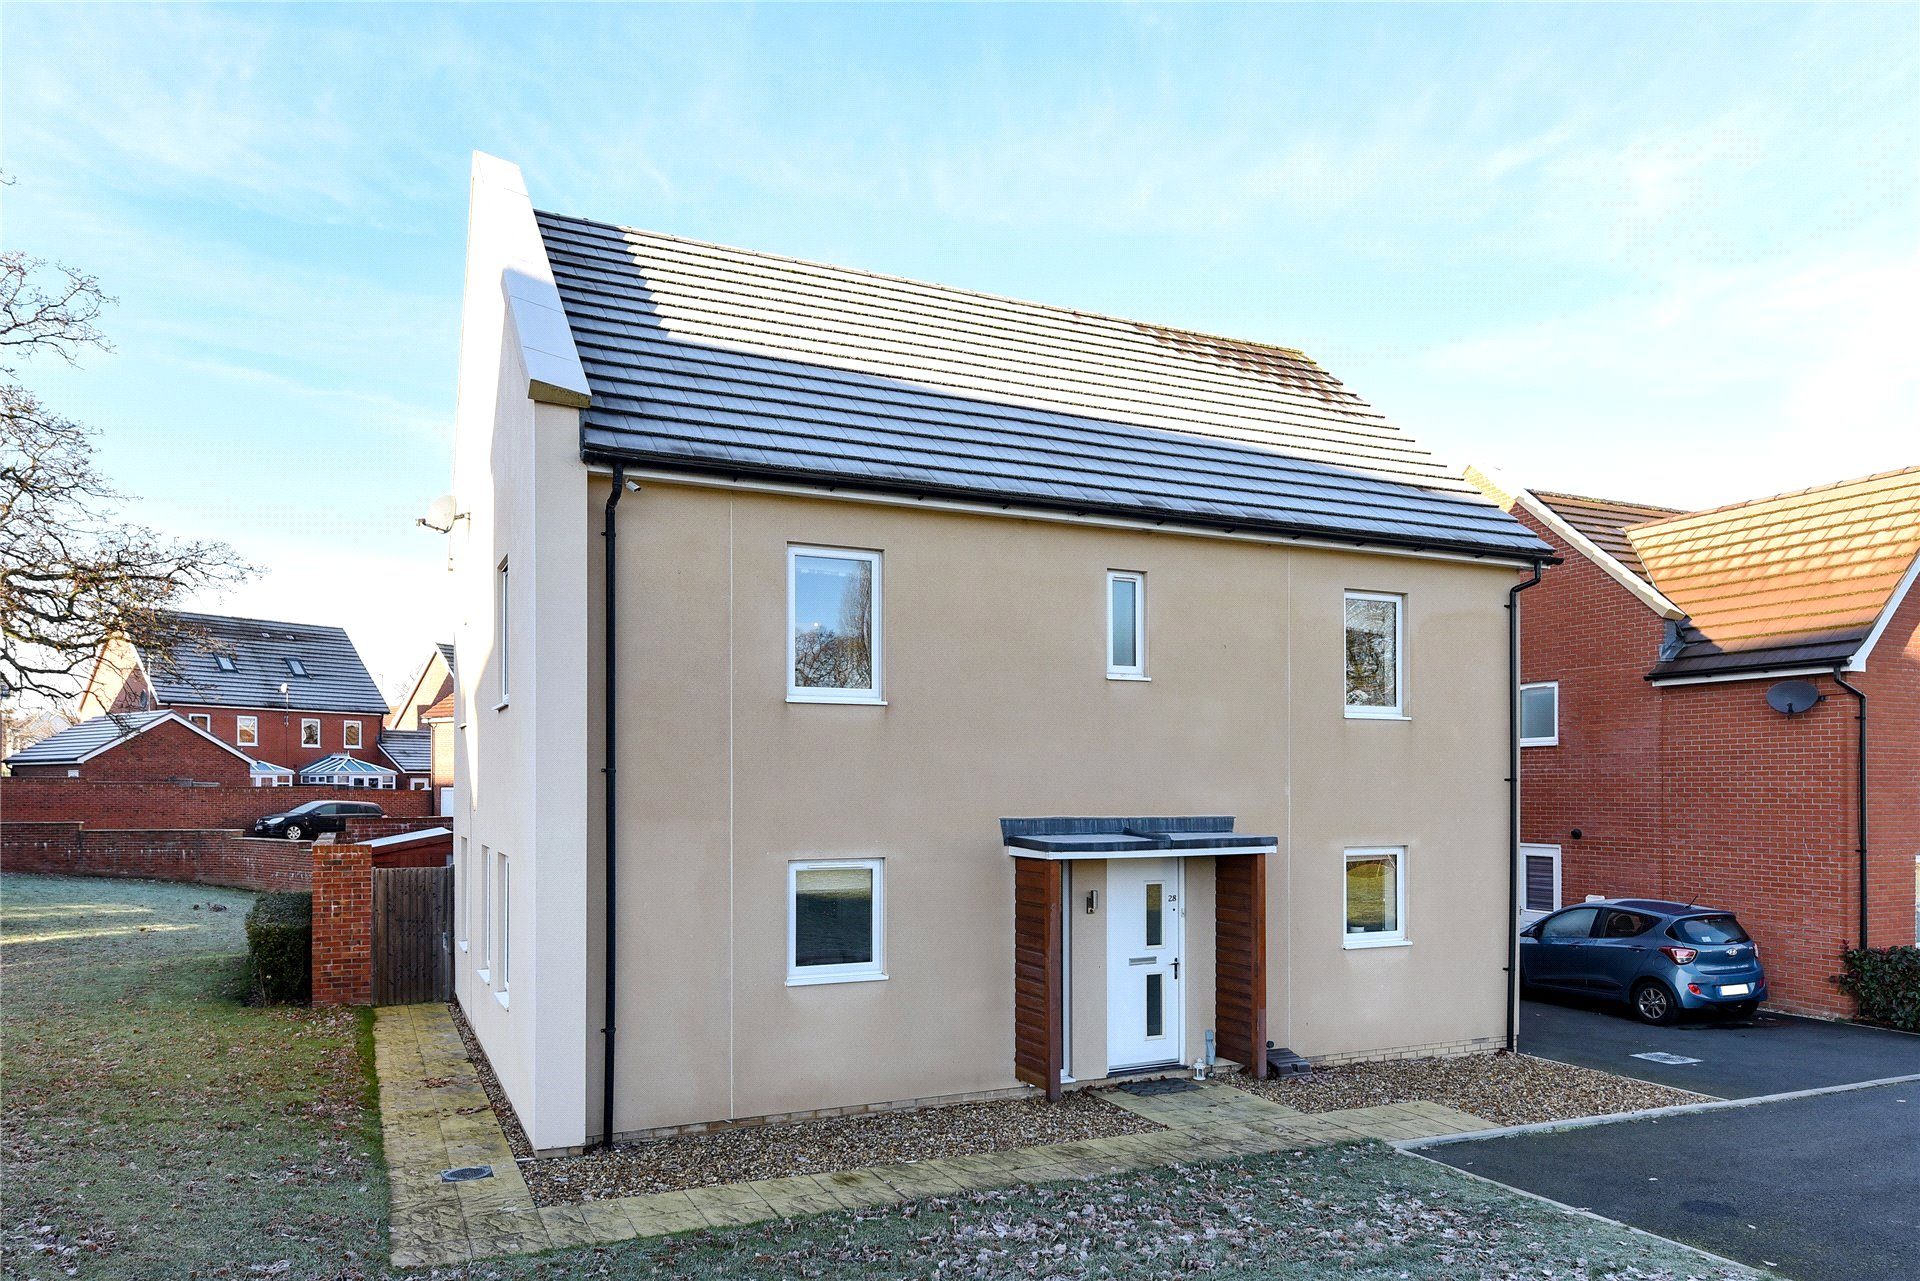 4 Bedrooms Detached House for sale in Mills Chase, Bracknell, Berkshire, RG12